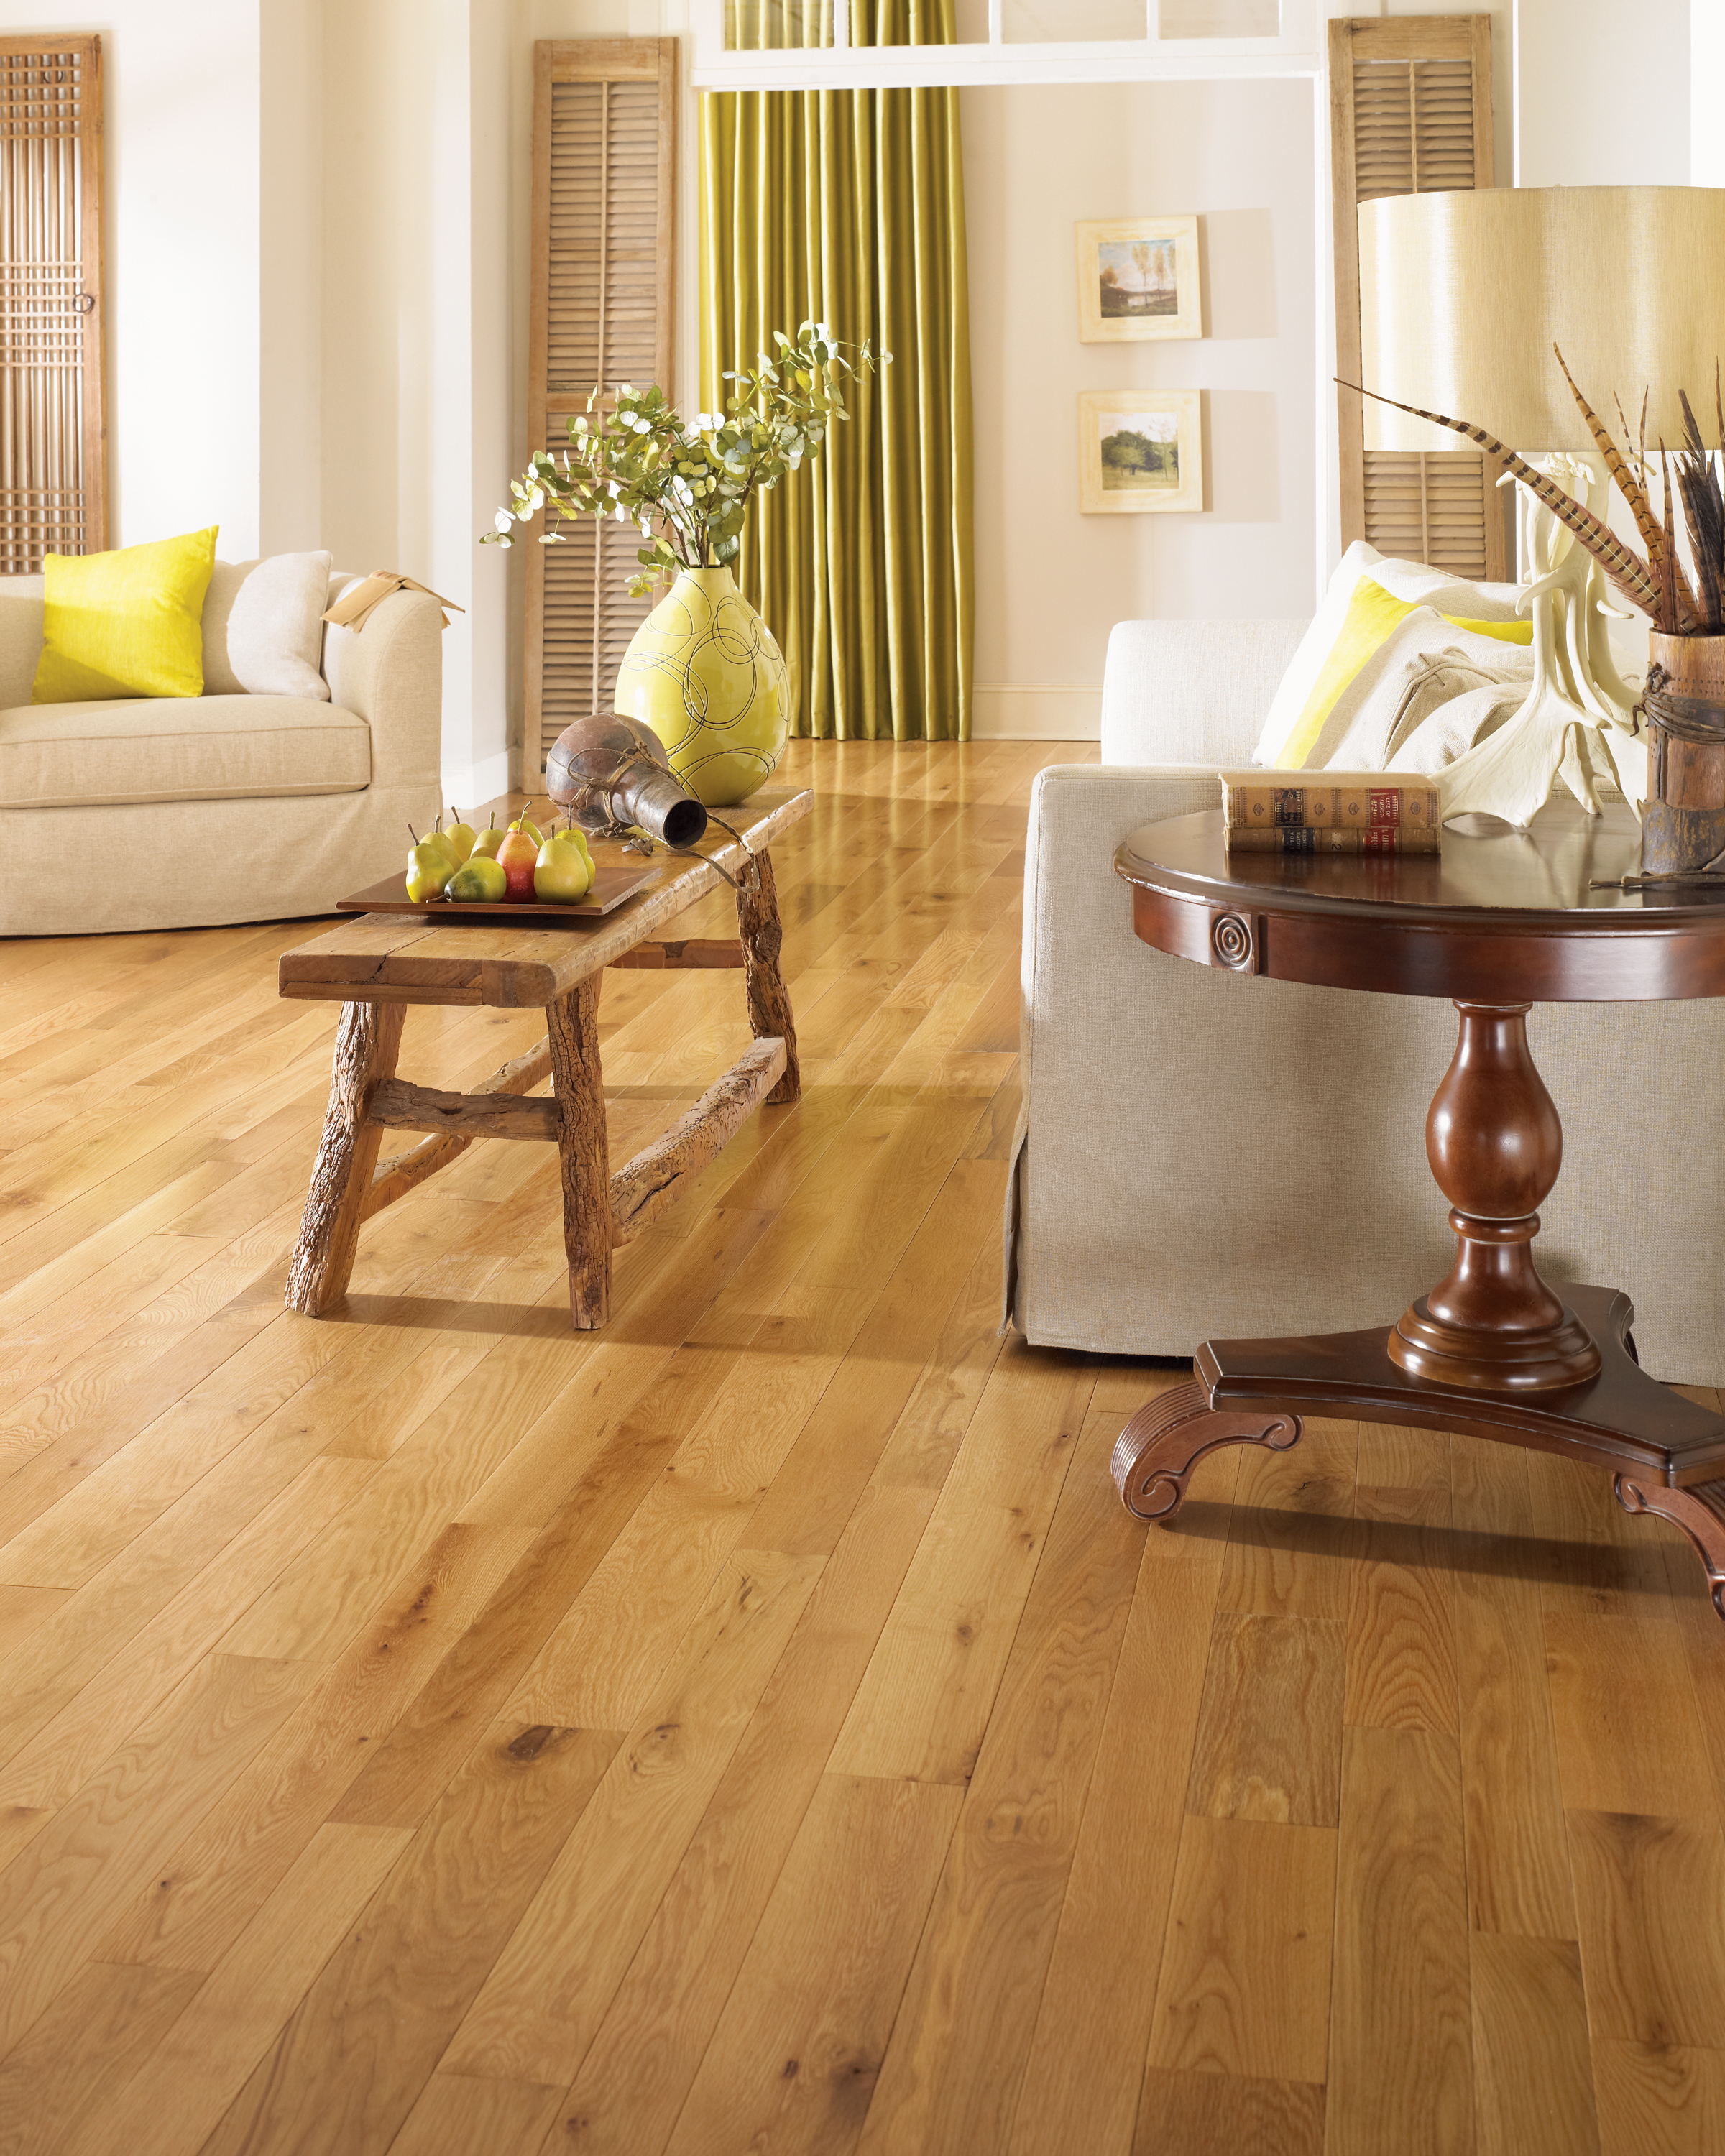 oak img floor finish flooring blog domino floors hardwood woca white